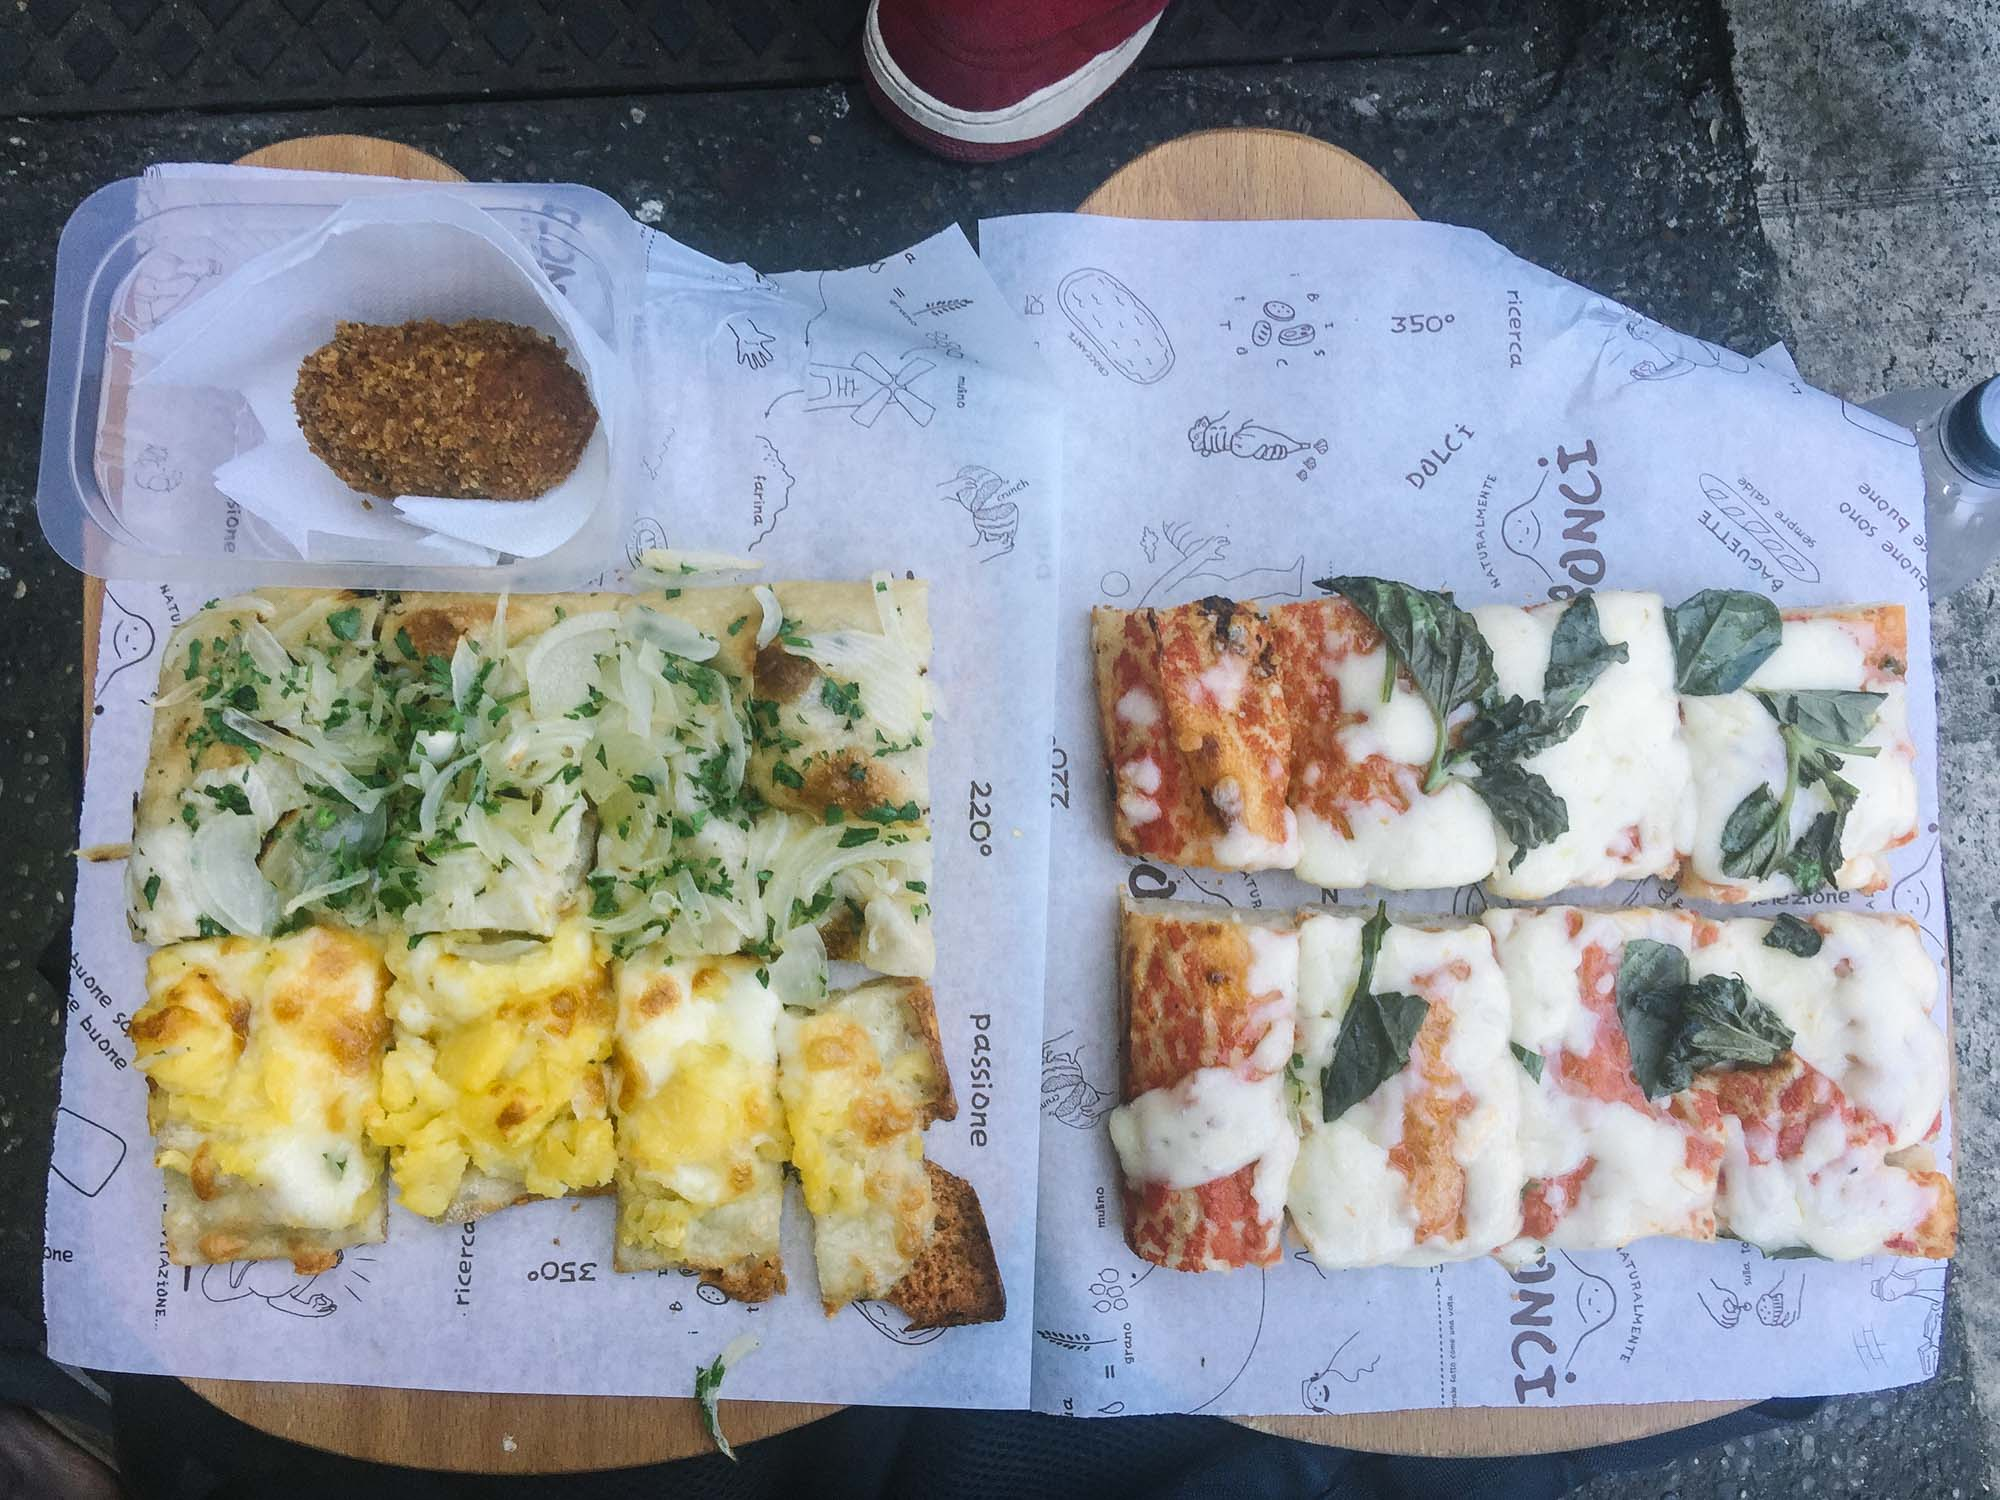 What food to avoid when pregnant in Italy